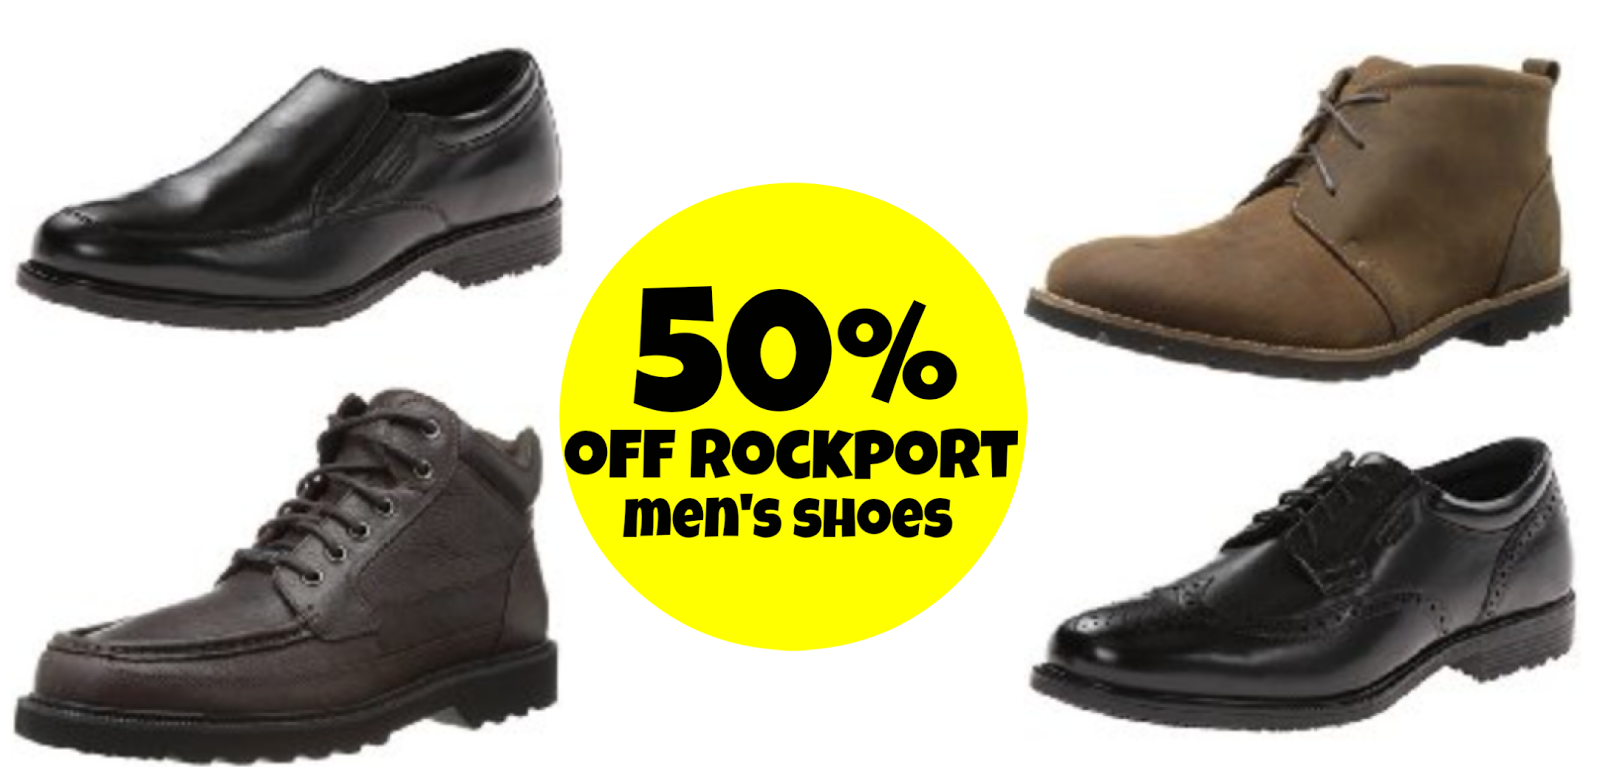 http://www.thebinderladies.com/2015/02/amazon-50-off-mens-rockport-shoes-boots.html#.VND1s4fduyM